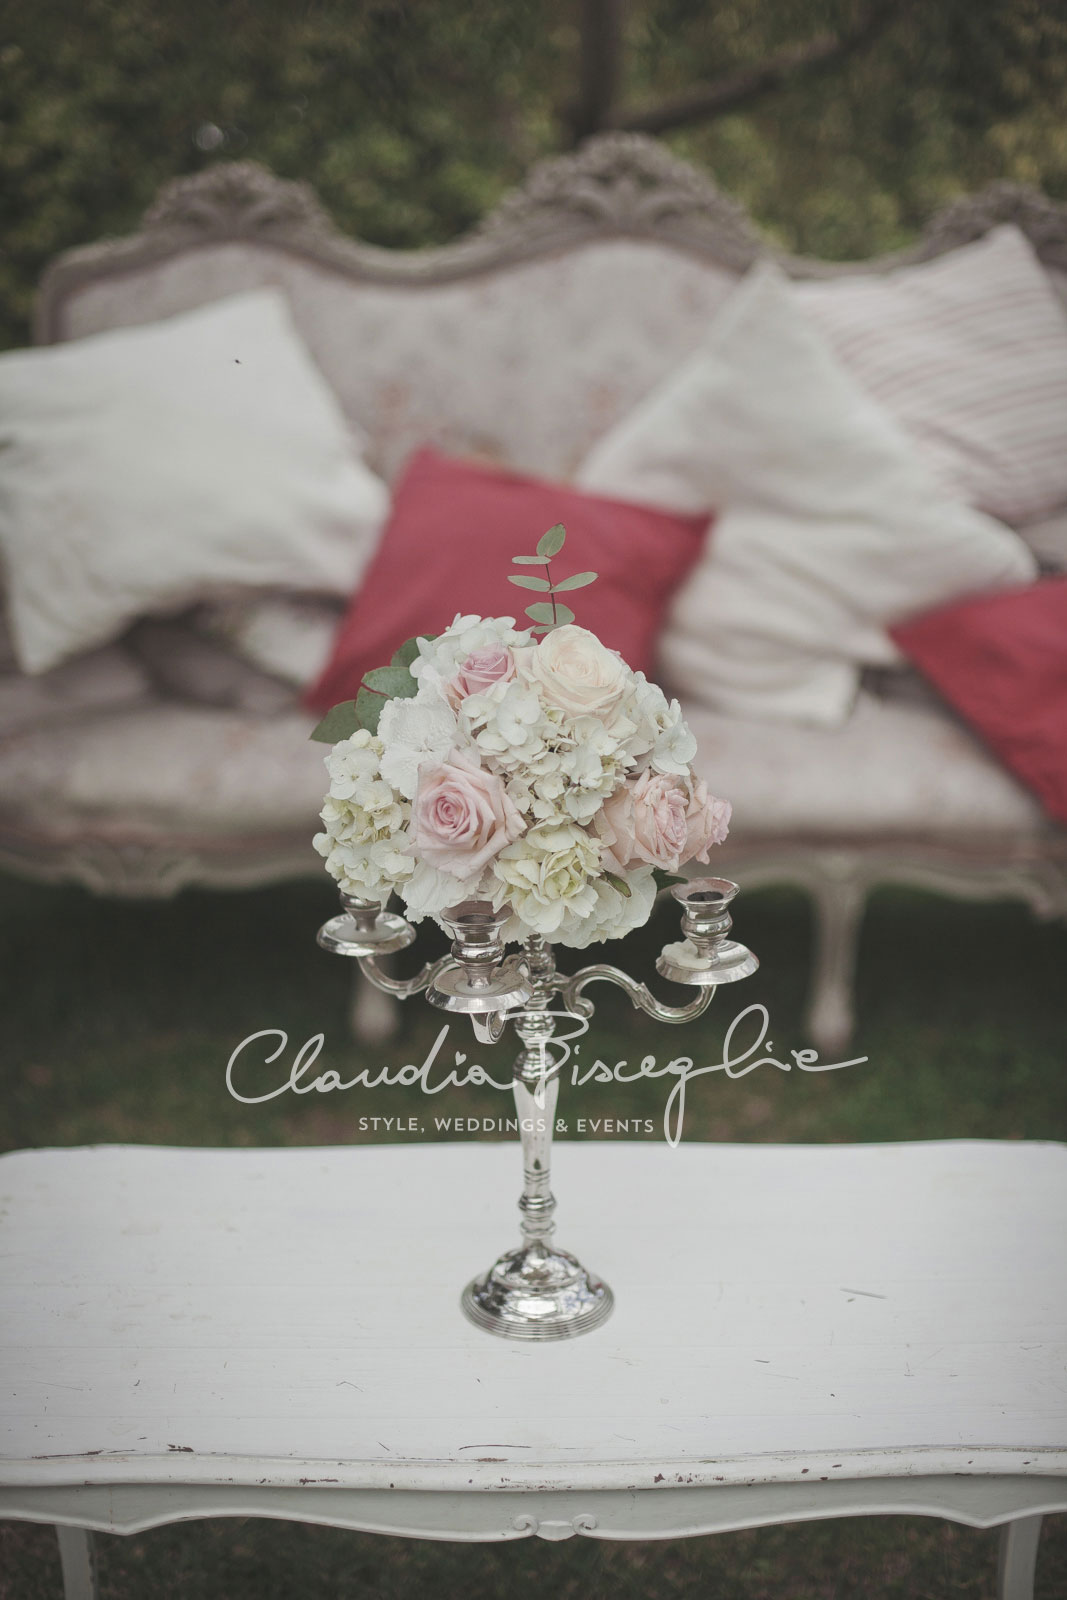 34-Flowers-setting-ClaudiaBisceglieweddingplanner